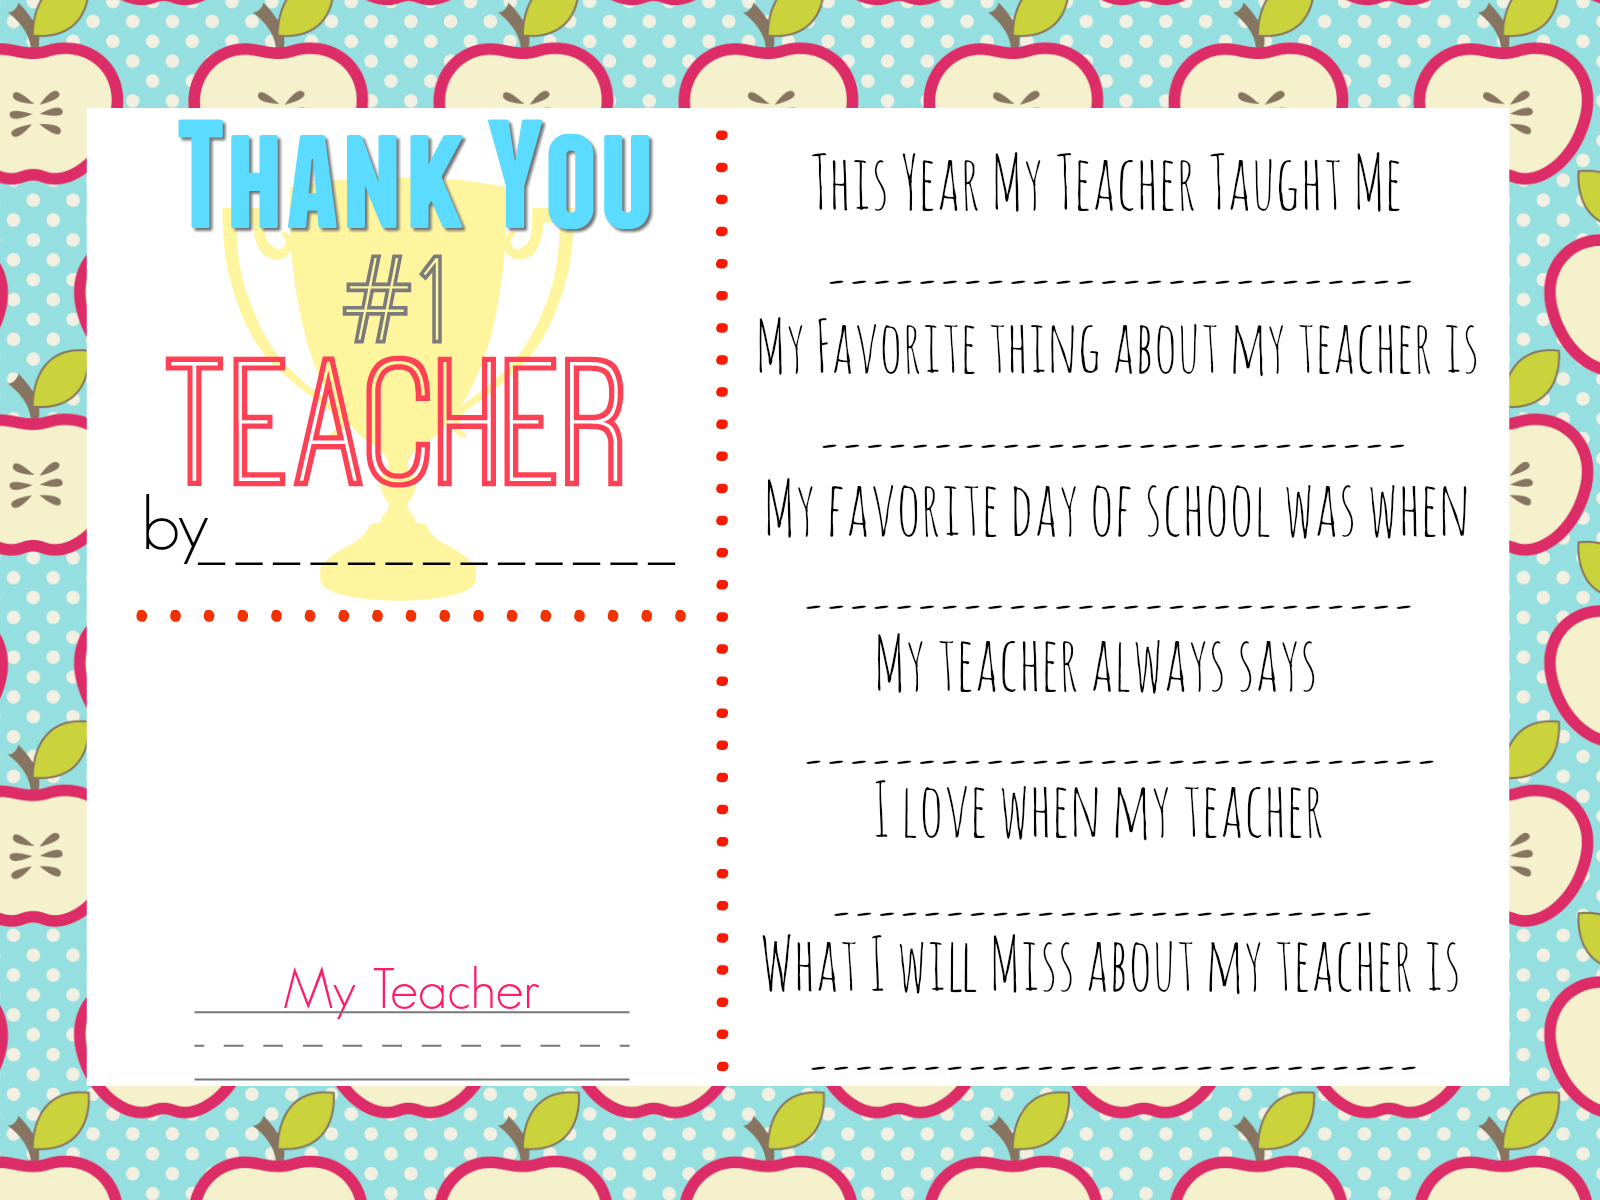 photograph relating to Printable Thank You Cards for Teacher referred to as 10 Trainer Present Plans w/ Cost-free Printable Reward Tags - Hip2Conserve